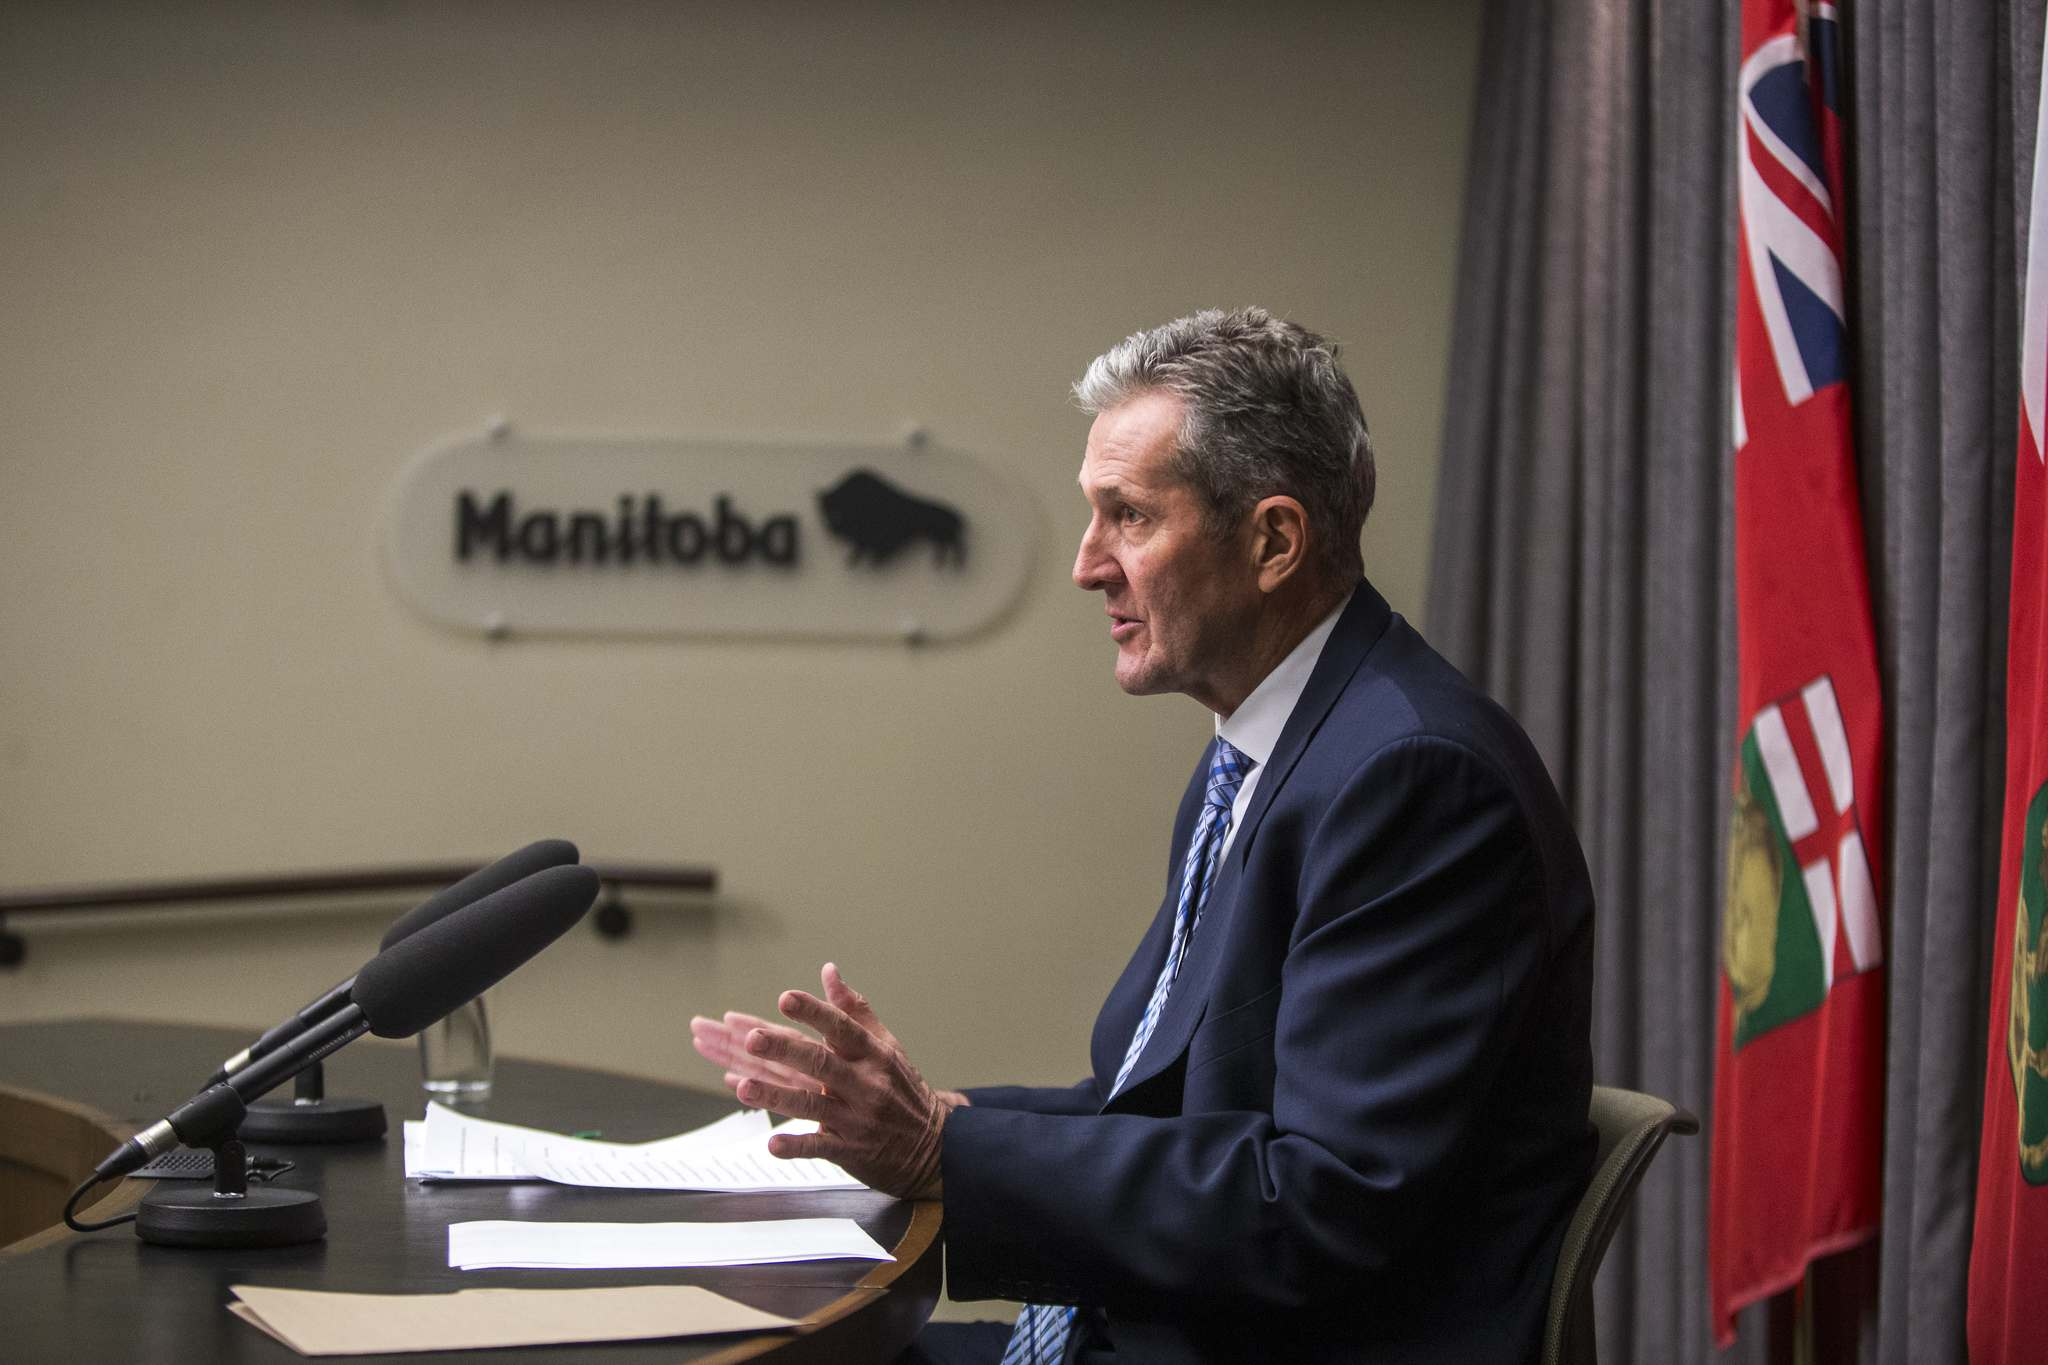 When Premier Brian Pallister whines about not getting enough federal dollars to pay for health care (equalization can be spent on whatever a province wants), it's tough to take his protests seriously. (Mikaela MacKenzie / Free Press files)